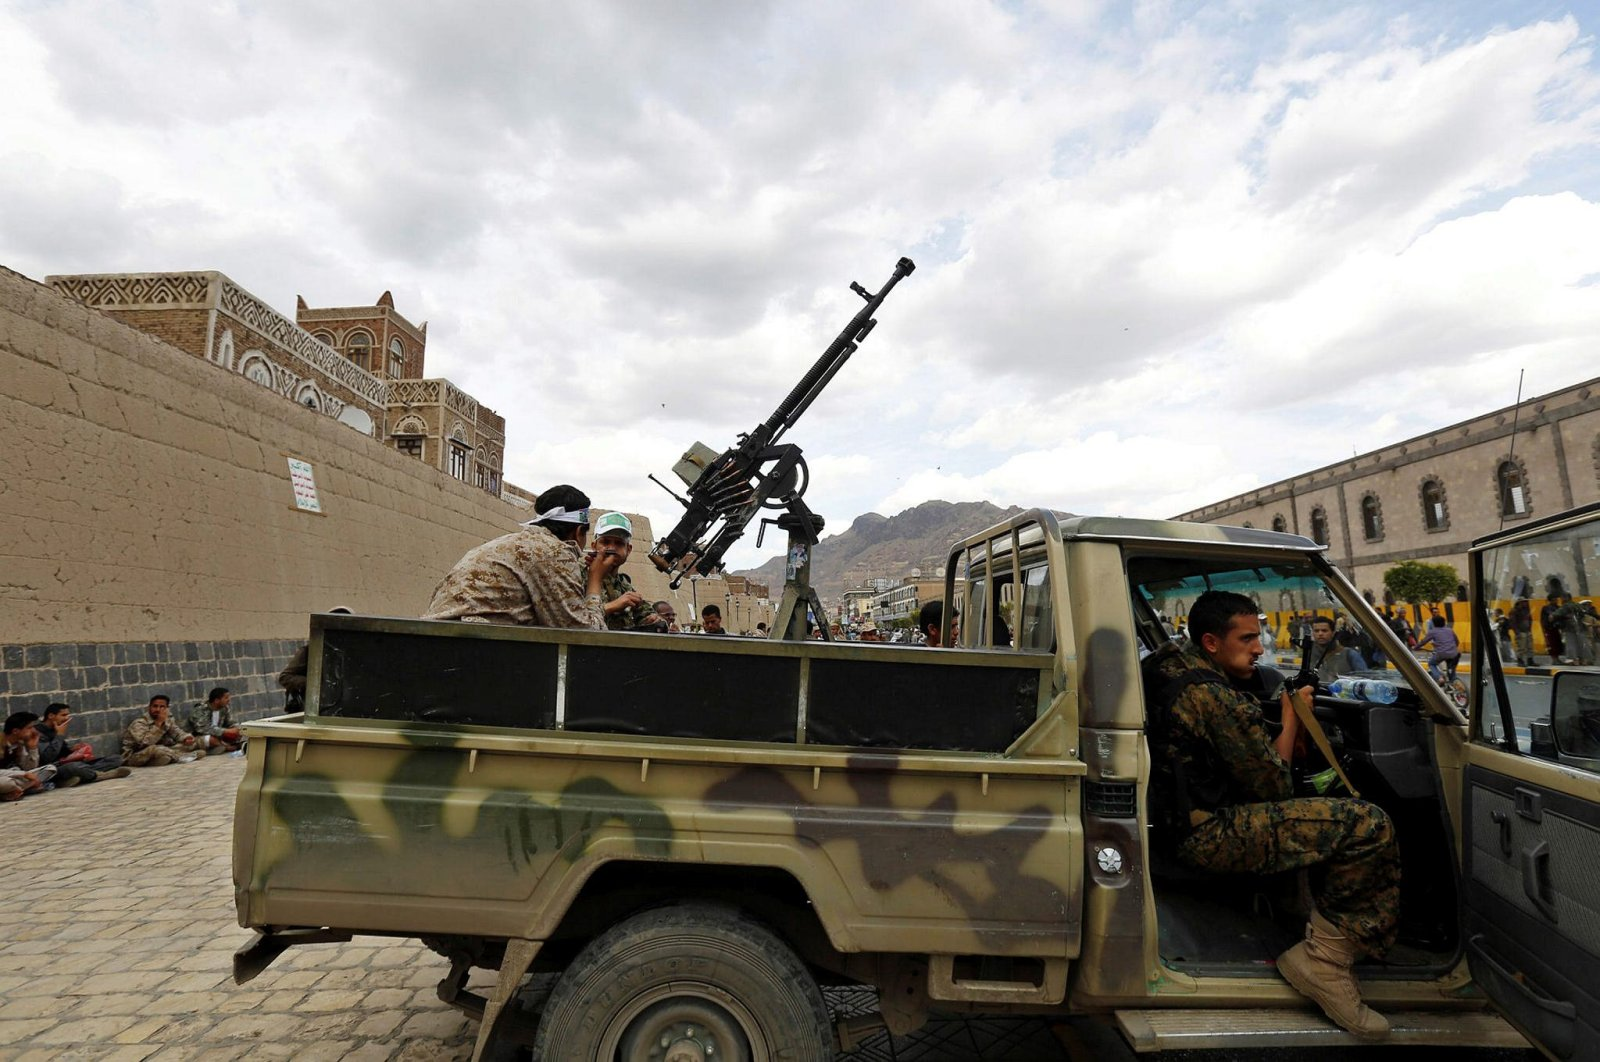 This undated file photo shows Yemen's Houthi fighters manning a heavy machine gun fixed on the back of a pickup truck. (File Photo)